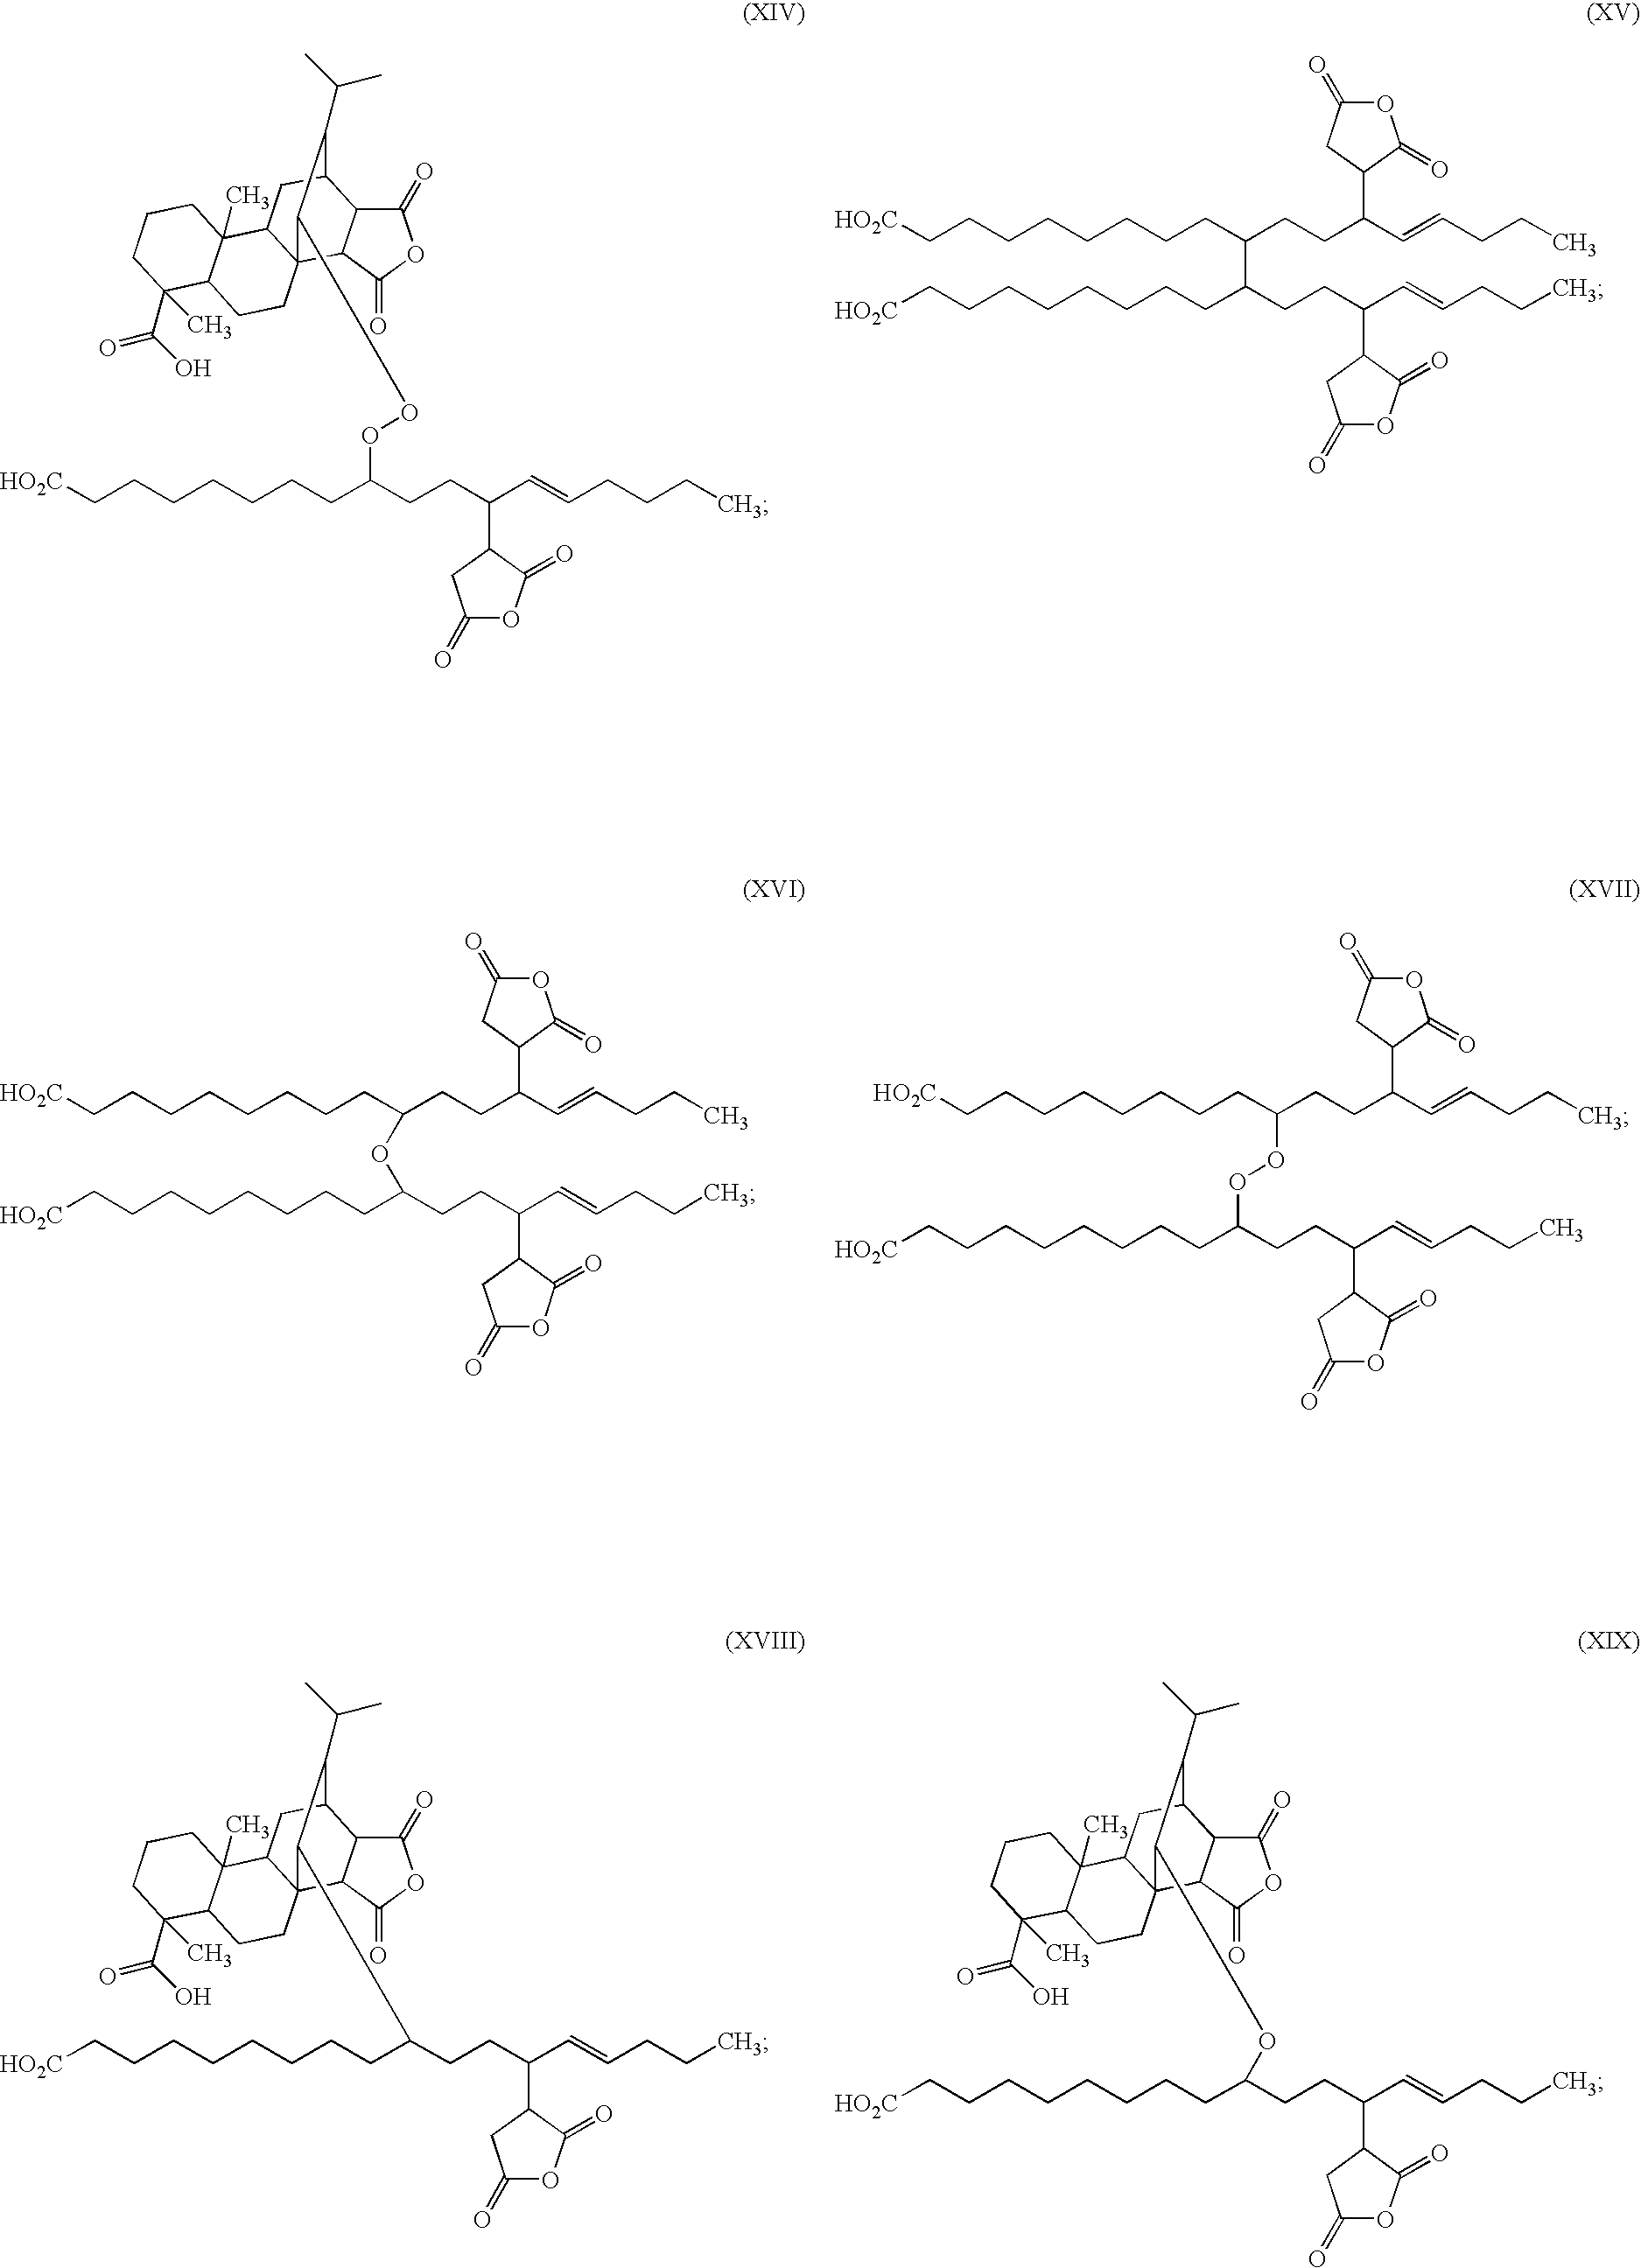 US8133970B2 - Oxidized and maleated derivative compositions - Google